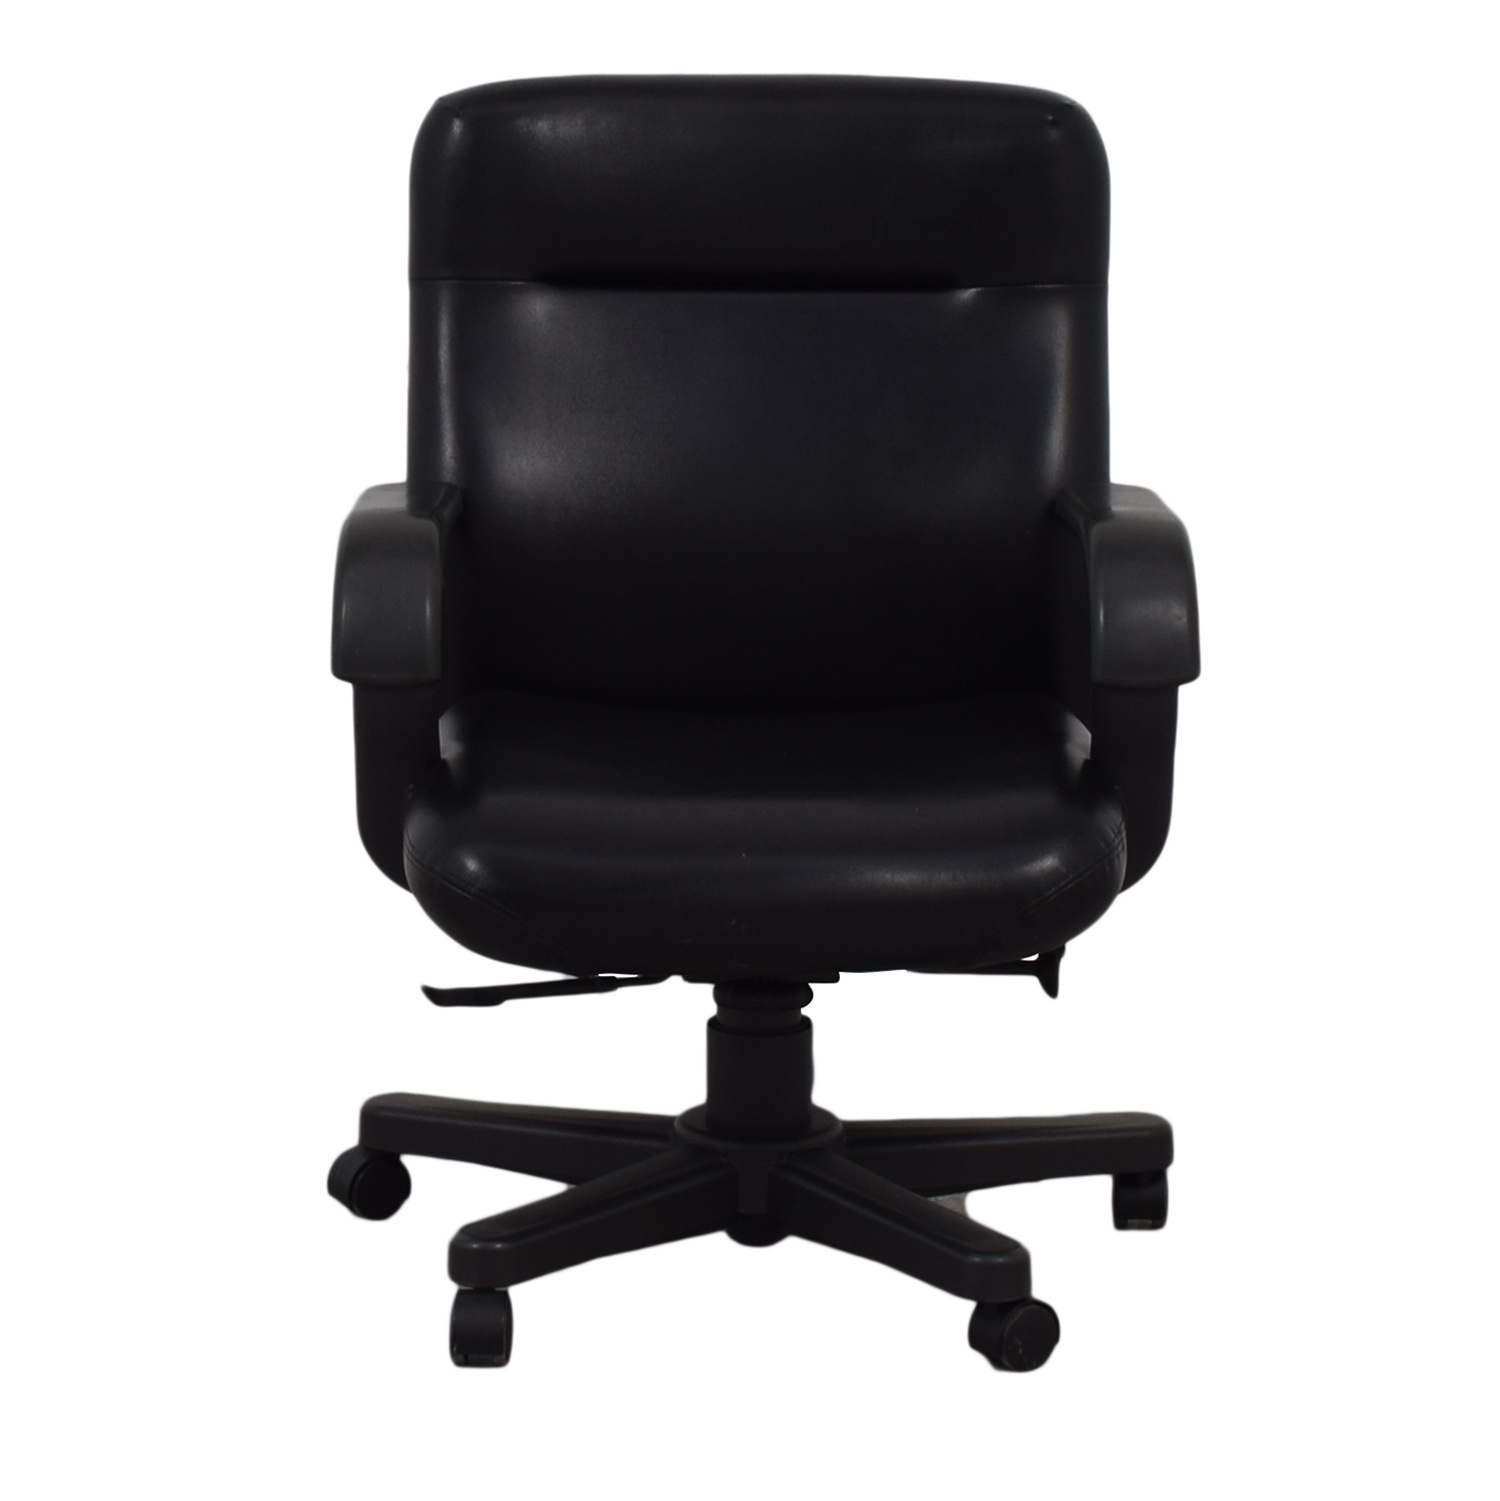 Knoll Knoll Black Leather Desk Chair second hand